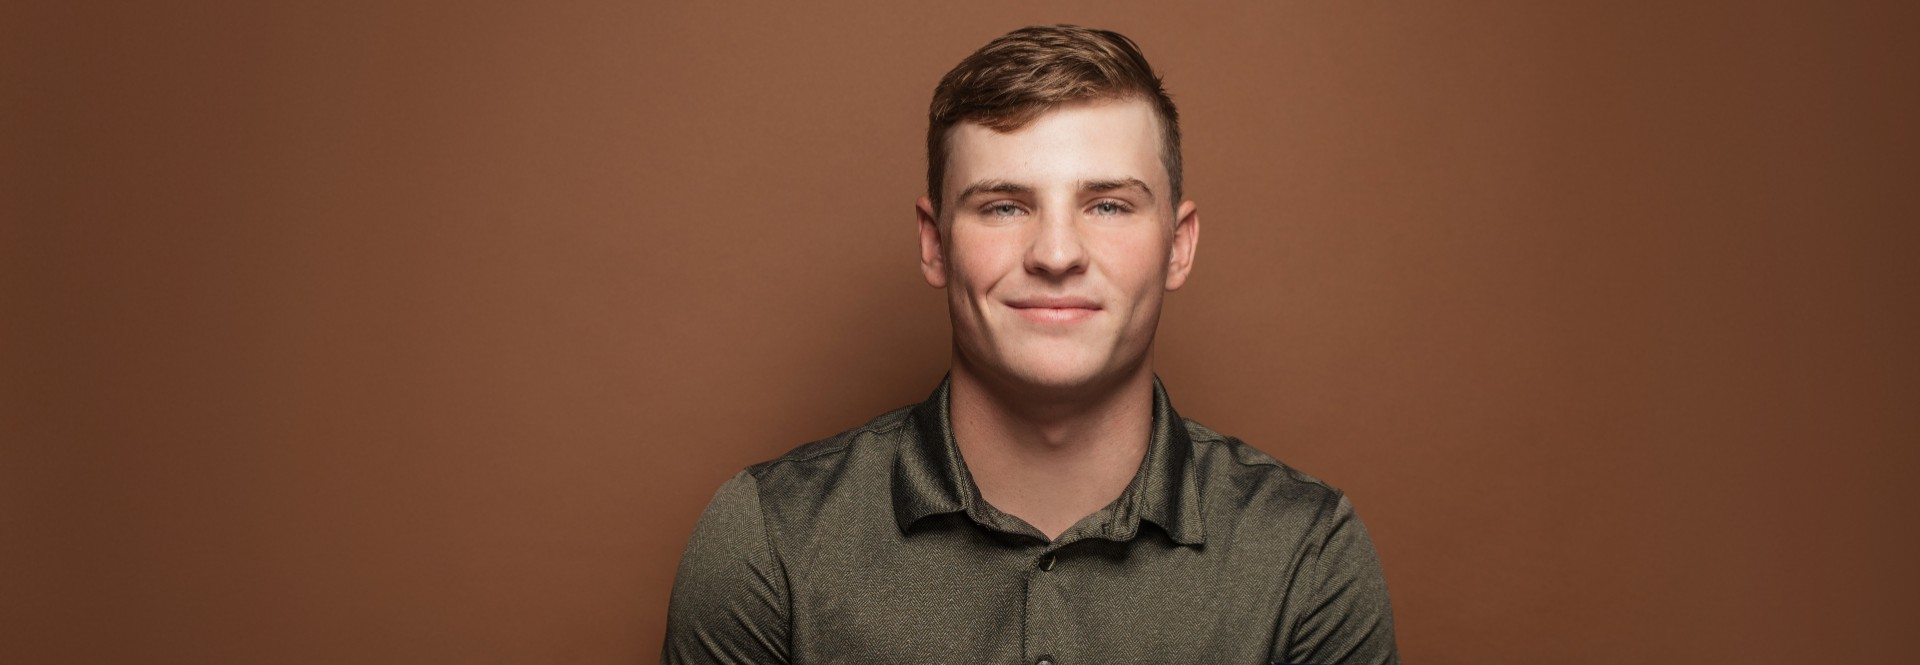 Passionate about coin collecting and bringing buildings to life, Luke Benignus '22 is drawing up plans for his construction career with the help of an Endowed Opportunity Award scholarship.